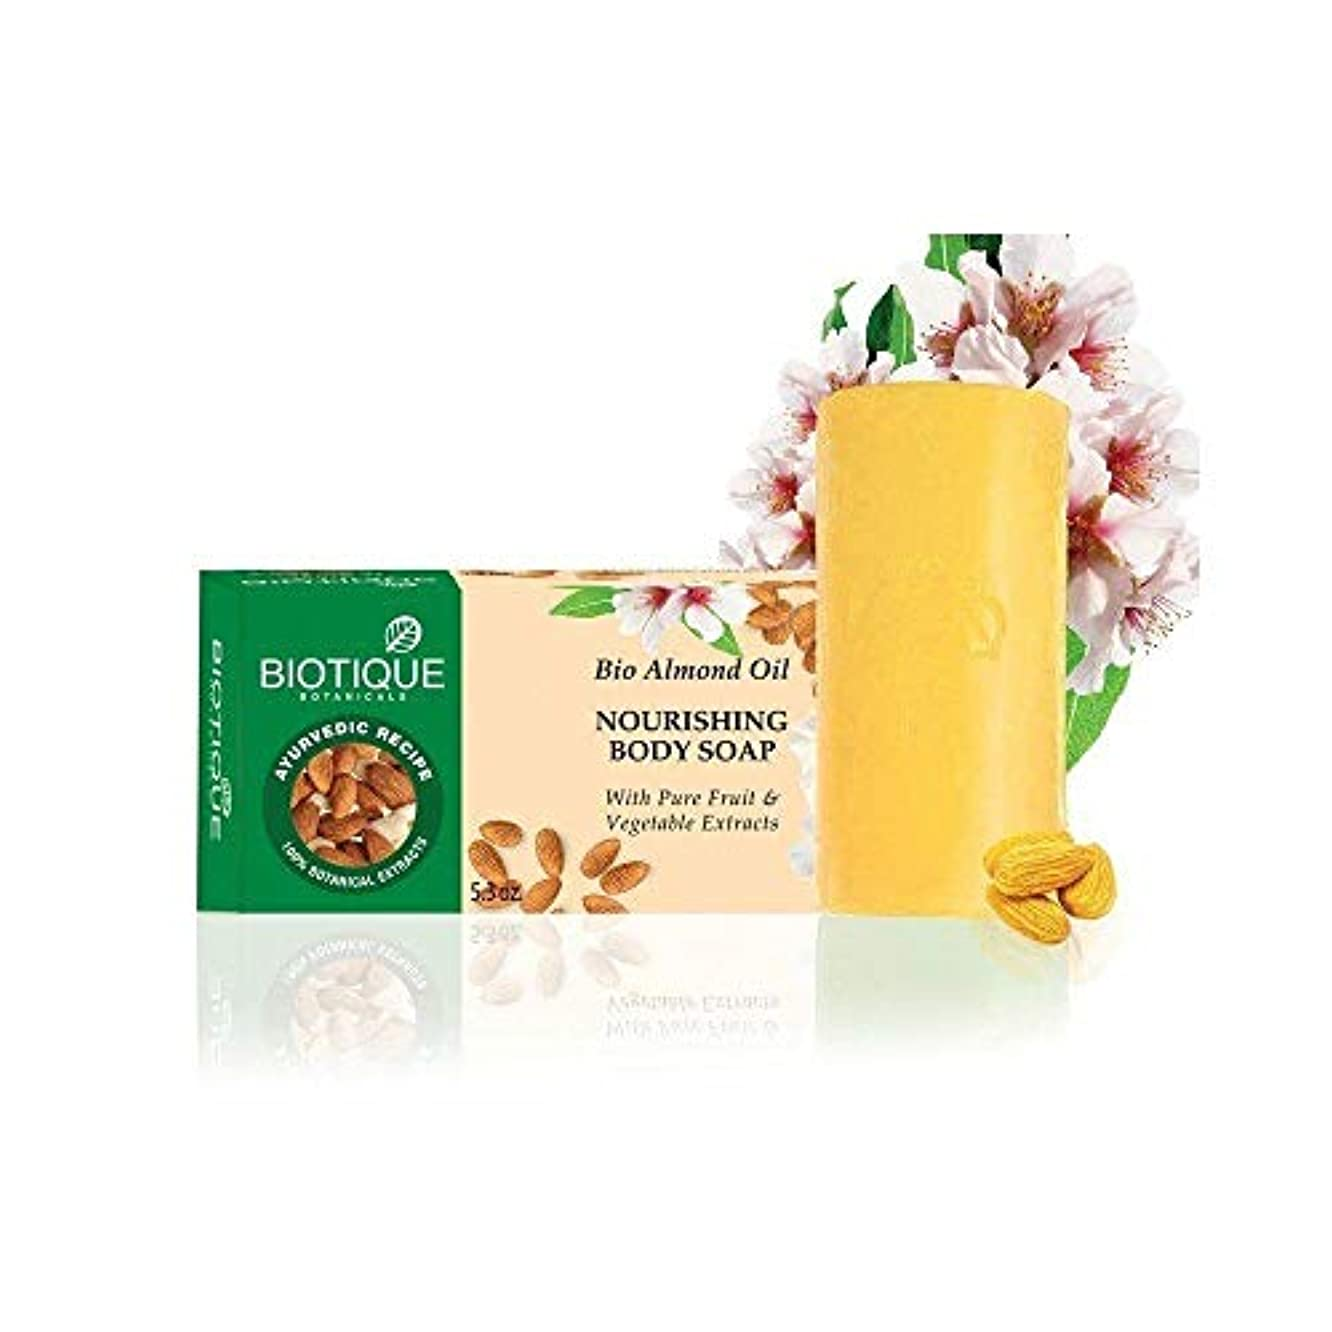 の量パキスタンアセBiotique Bio Almond Oil Nourishing Body Soap - 150g (Pack of 2) wash Impurities Biotique Bio Almond Oilナリッシングボディソープ...